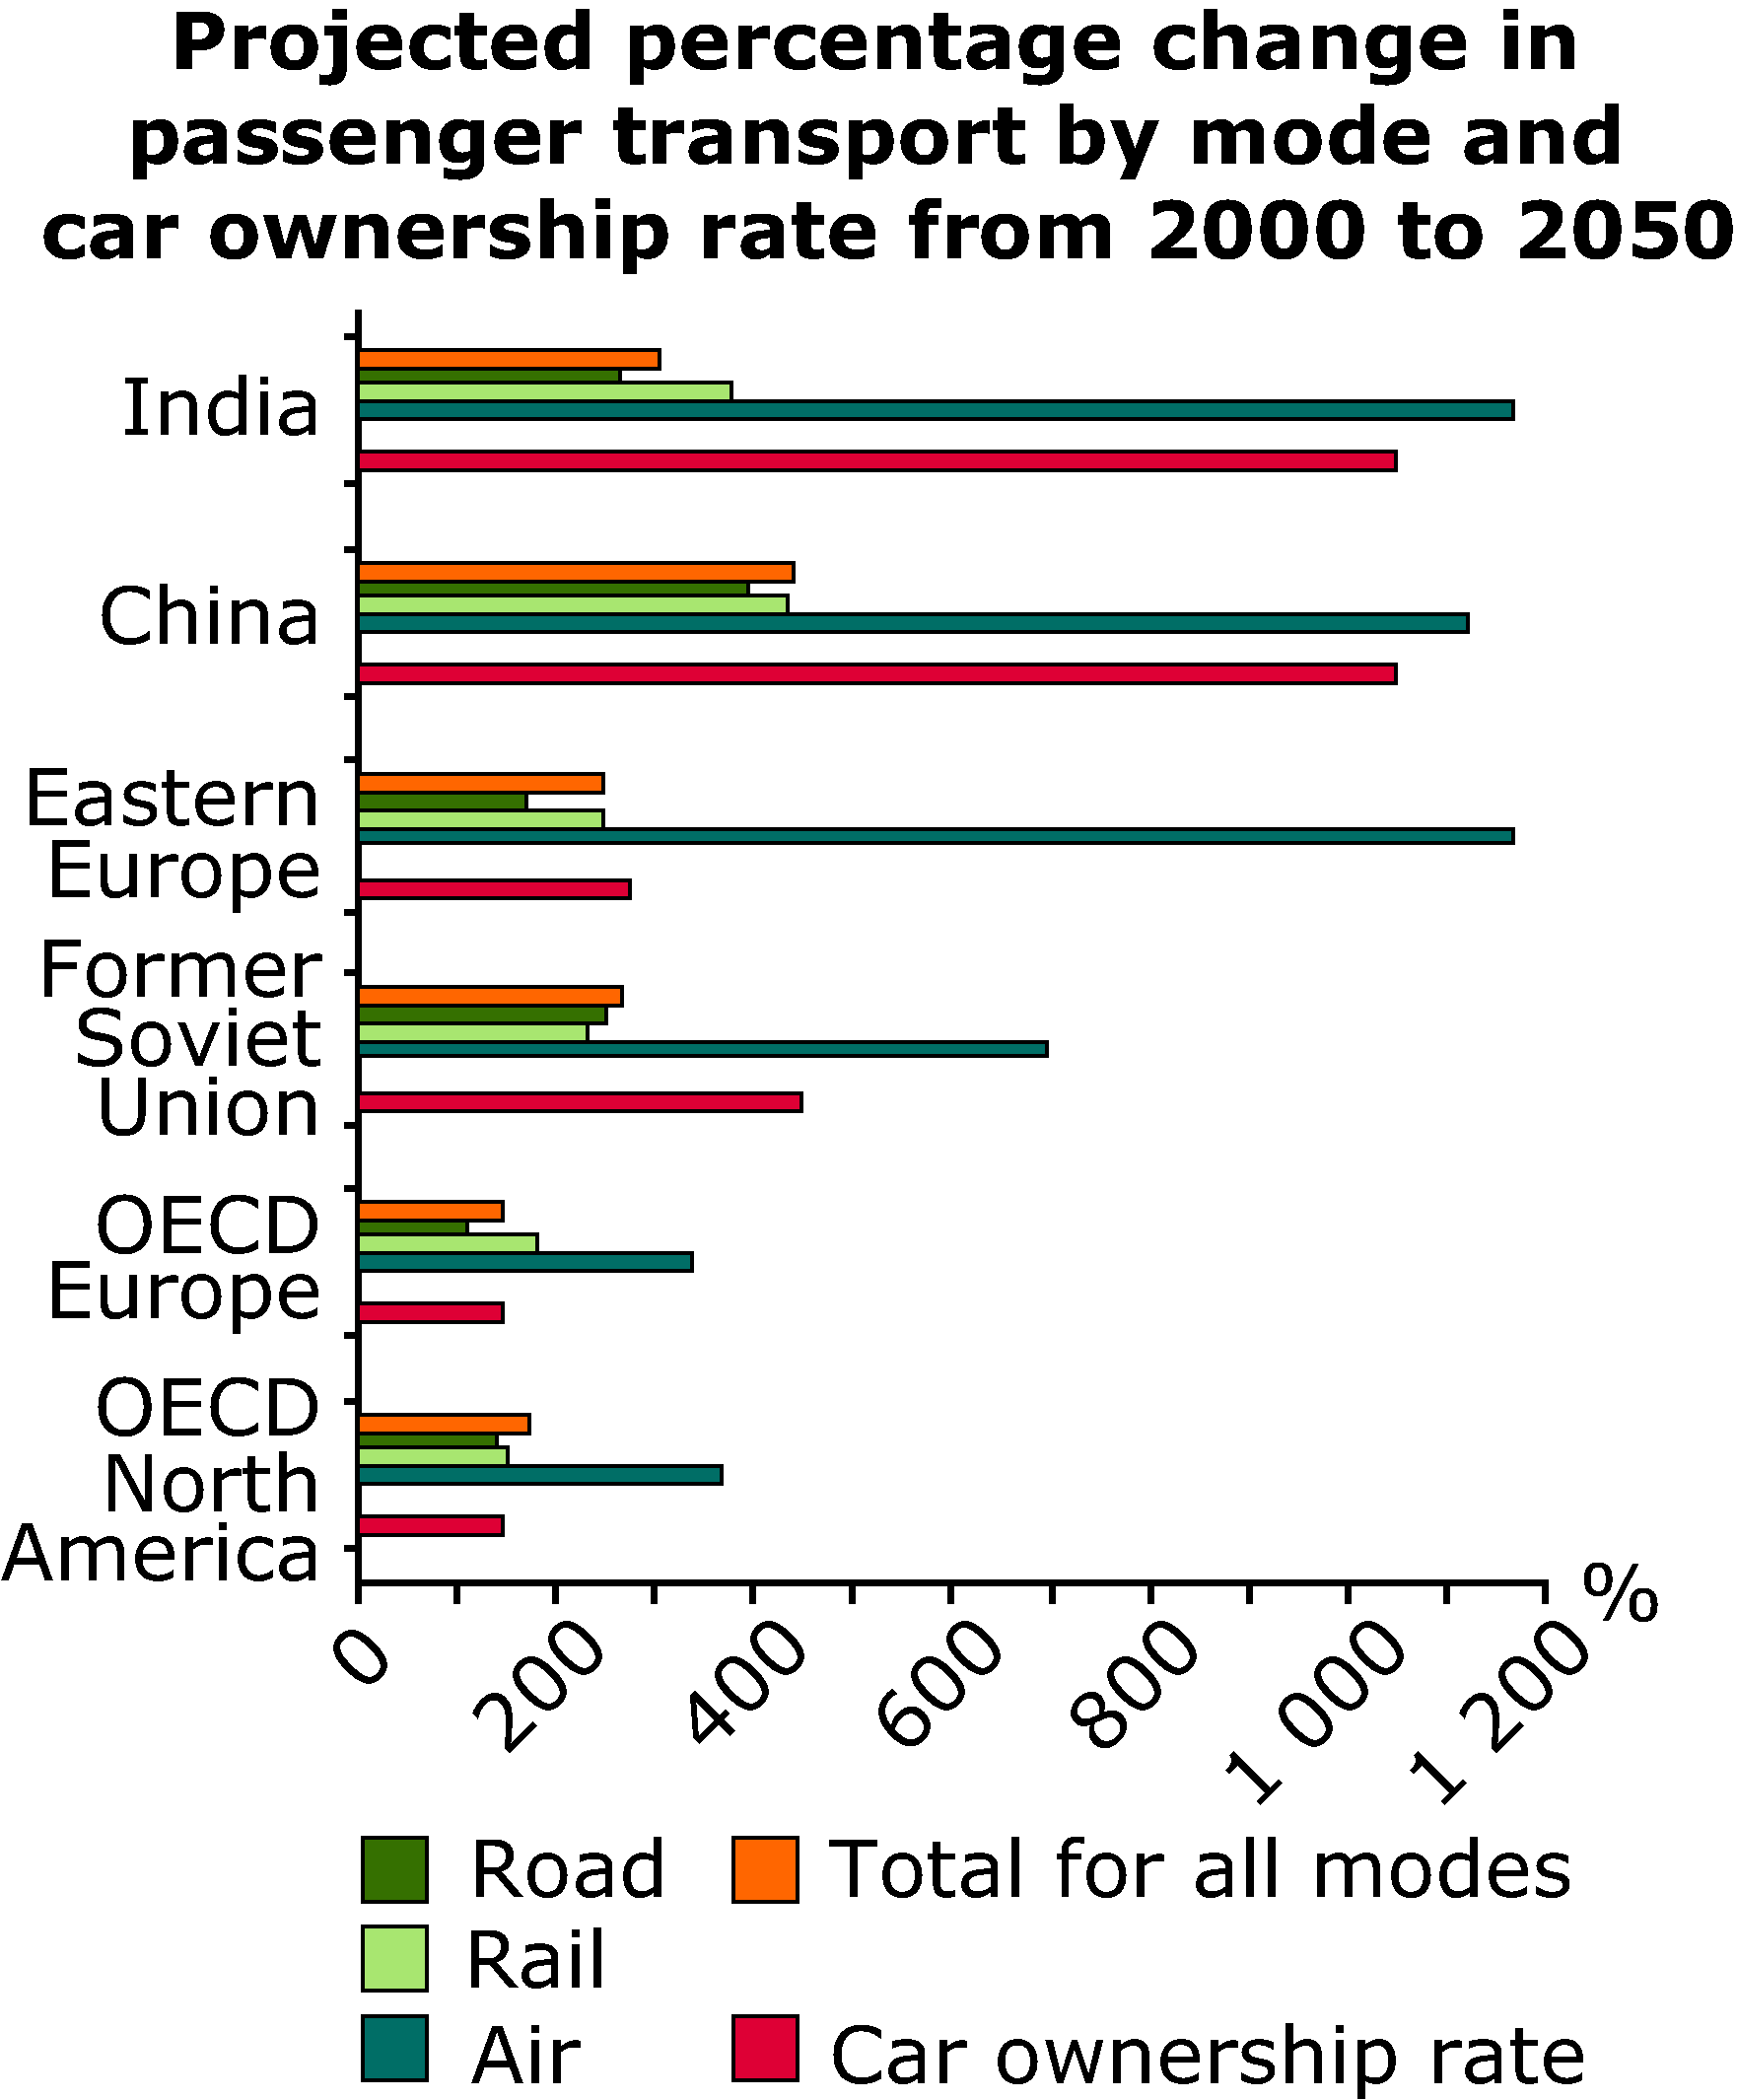 Projected percentage change in passenger transport by mode and car ownership rate from 2000 to 2050